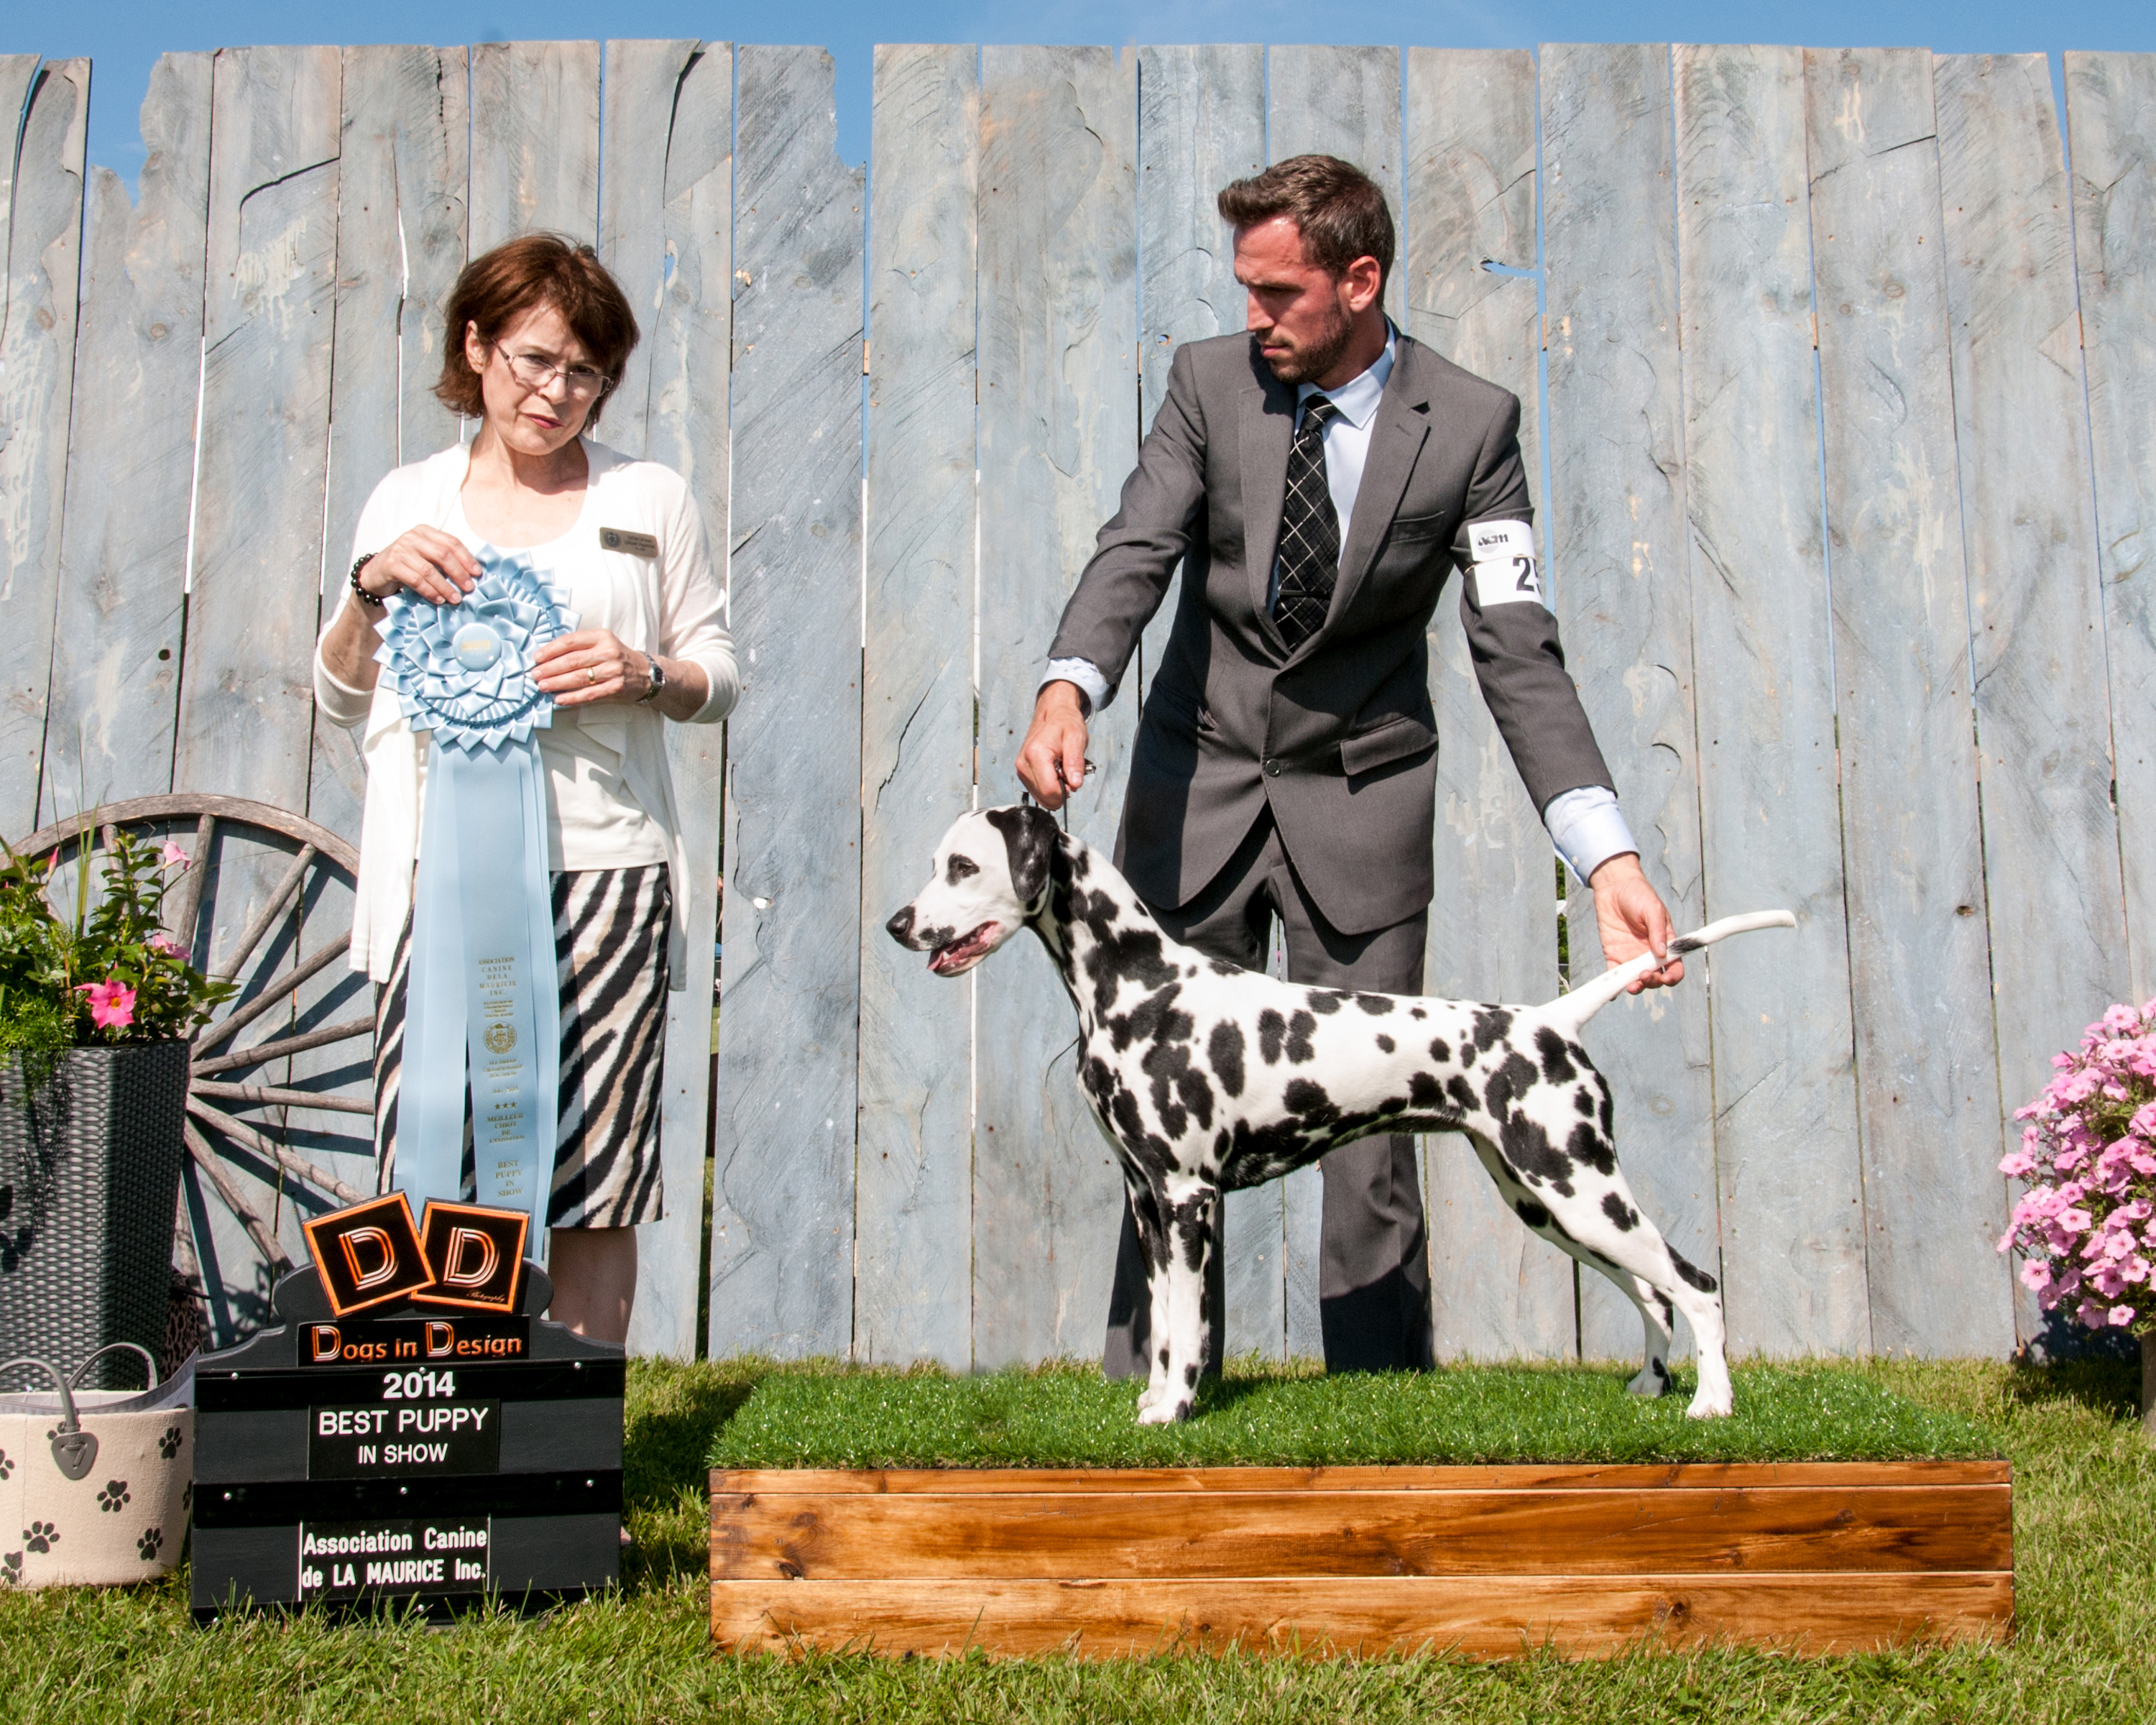 Best Puppy in Show - New Champion